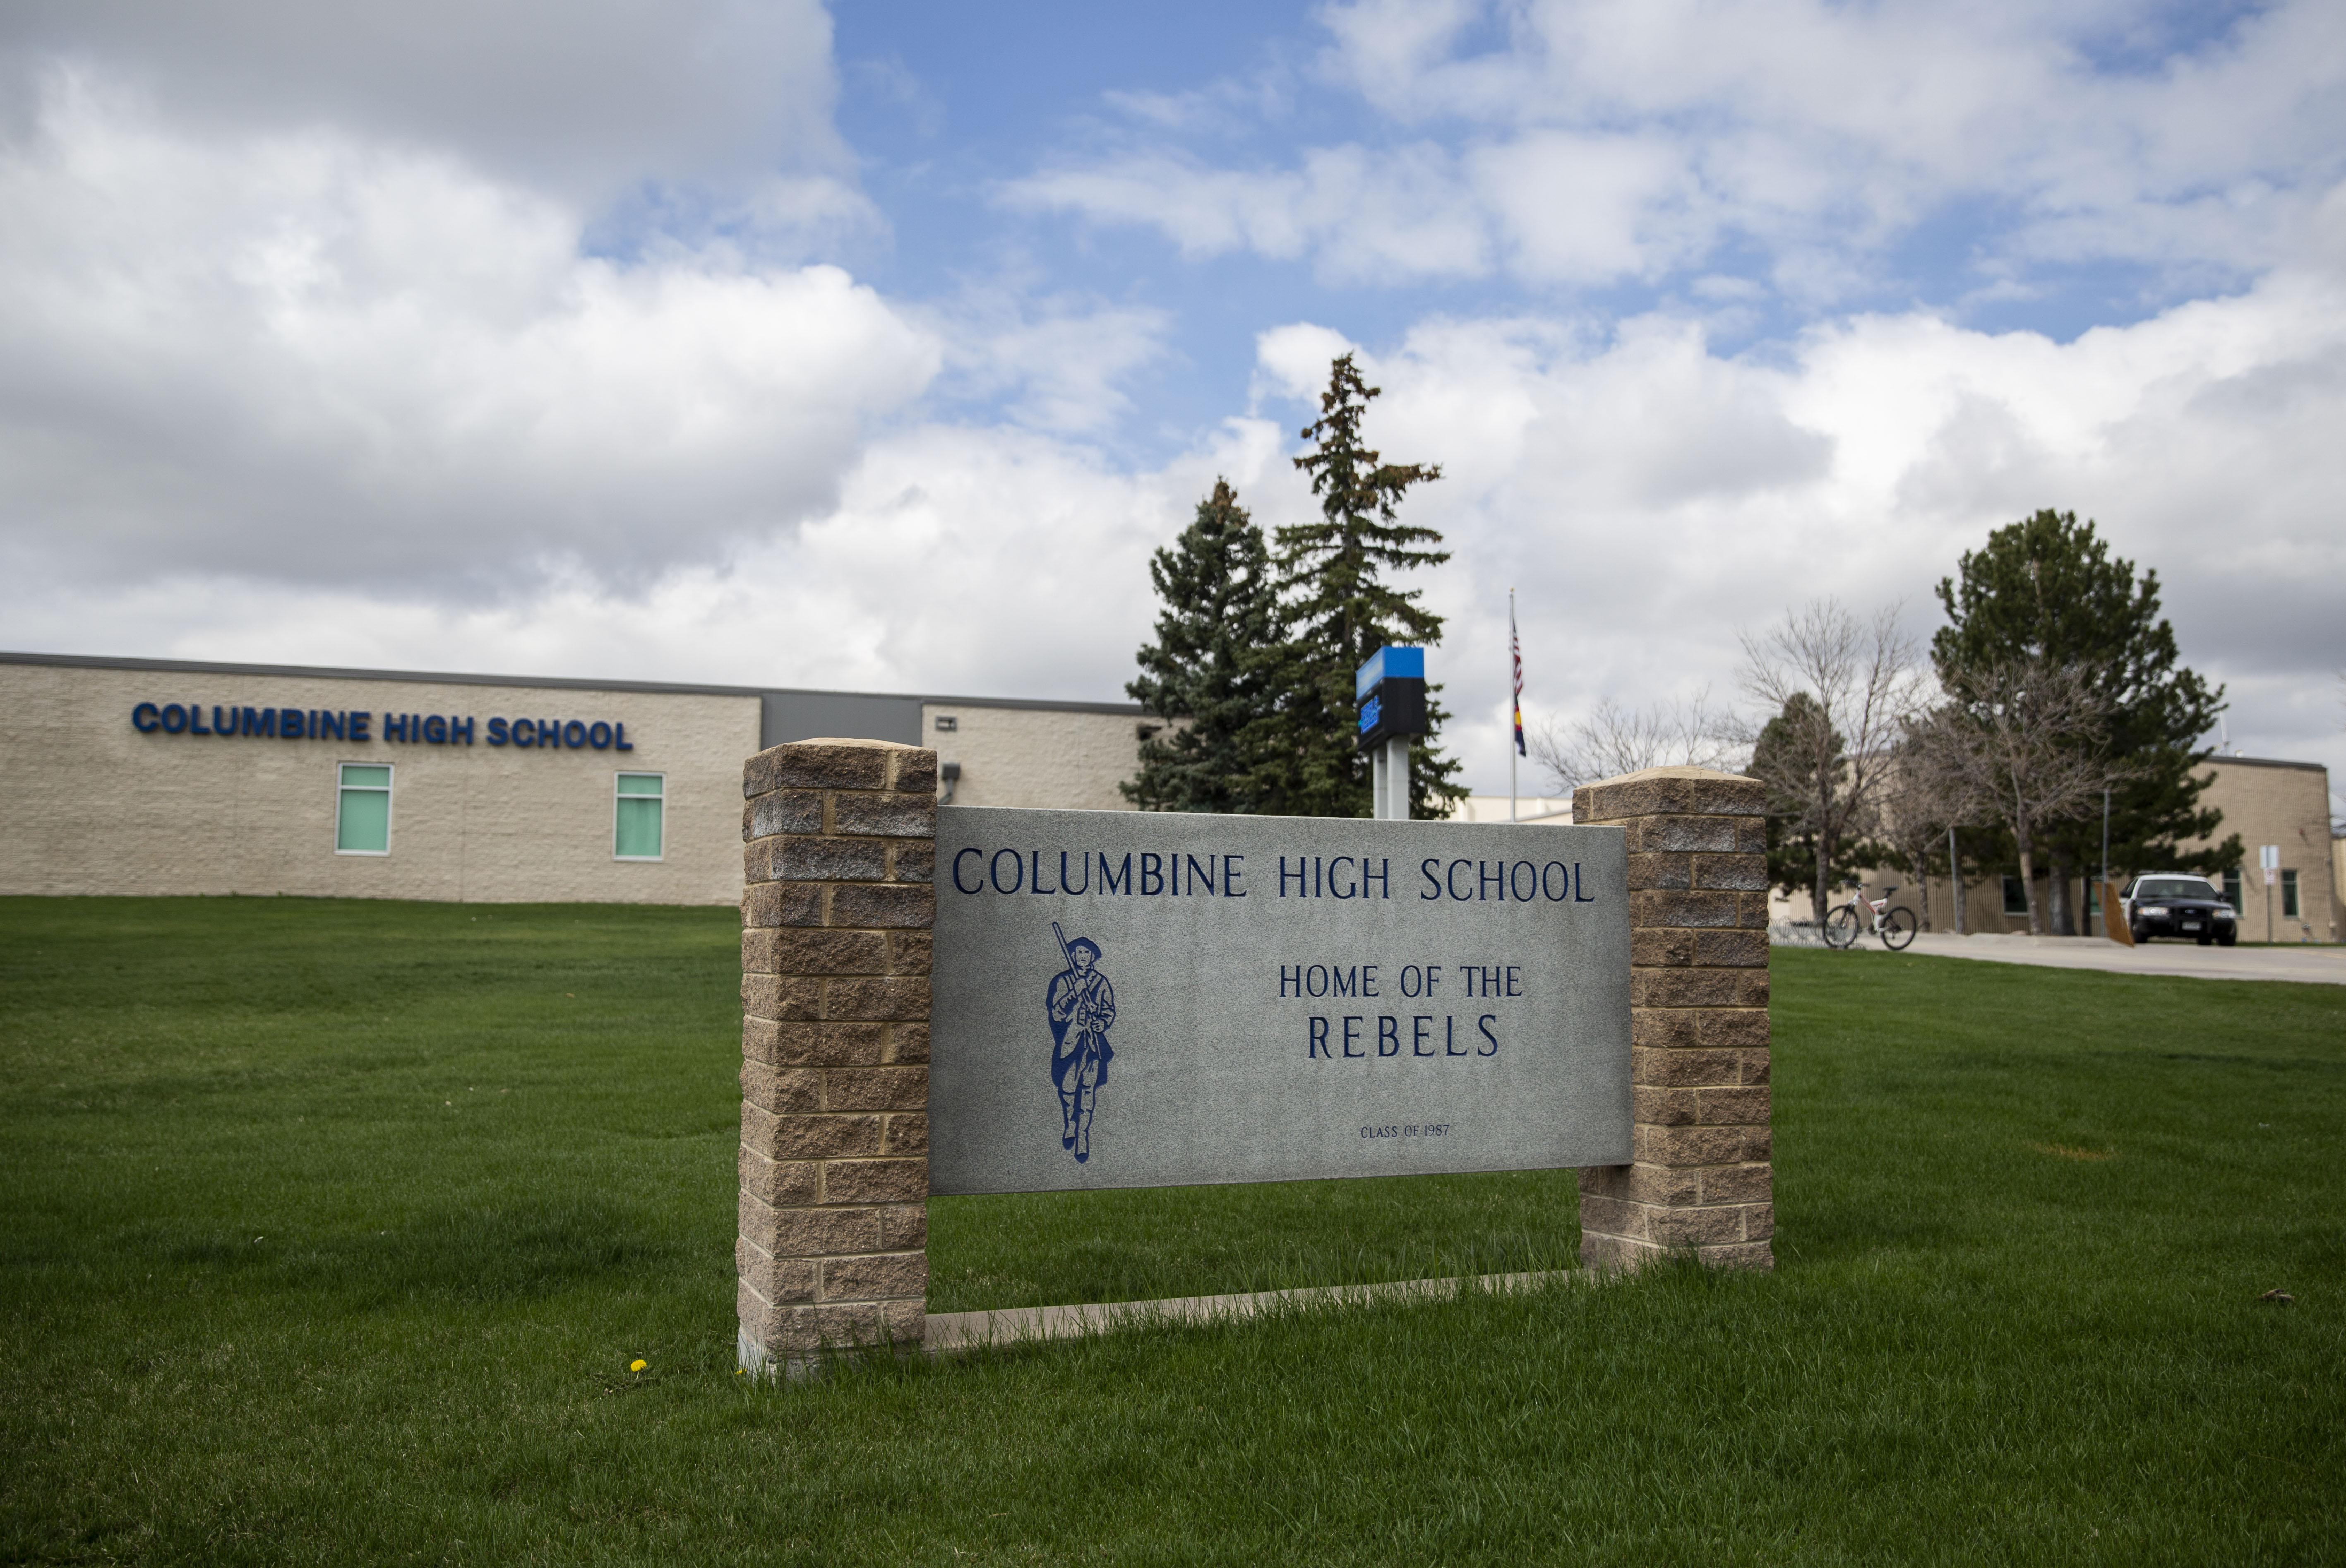 A police car can be seen outside Columbine High School.